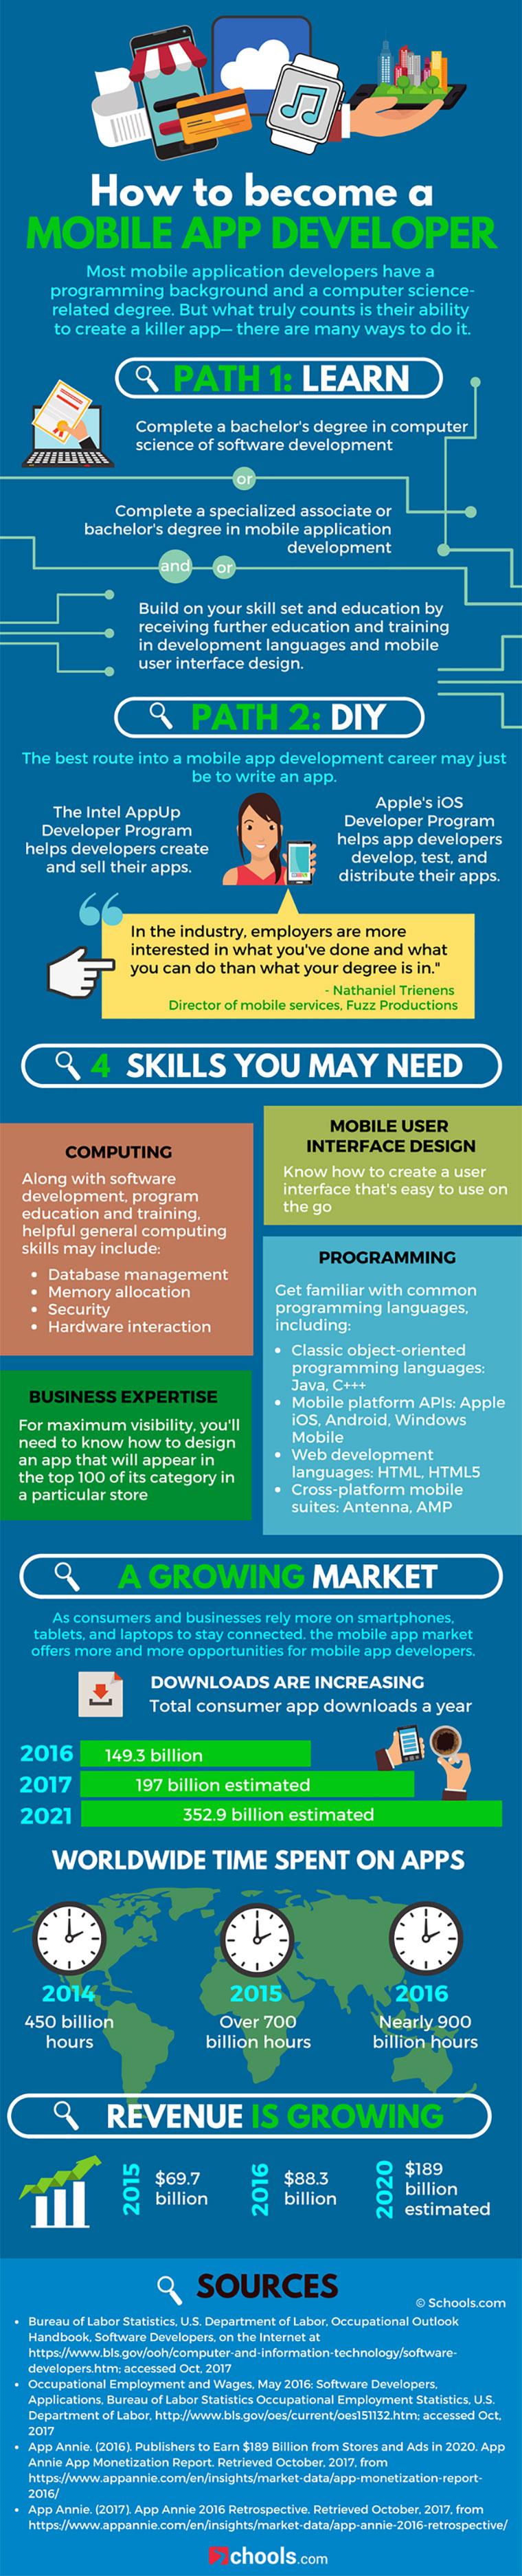 Job Outlook and Opportunities: Mobile App Development - Infographic